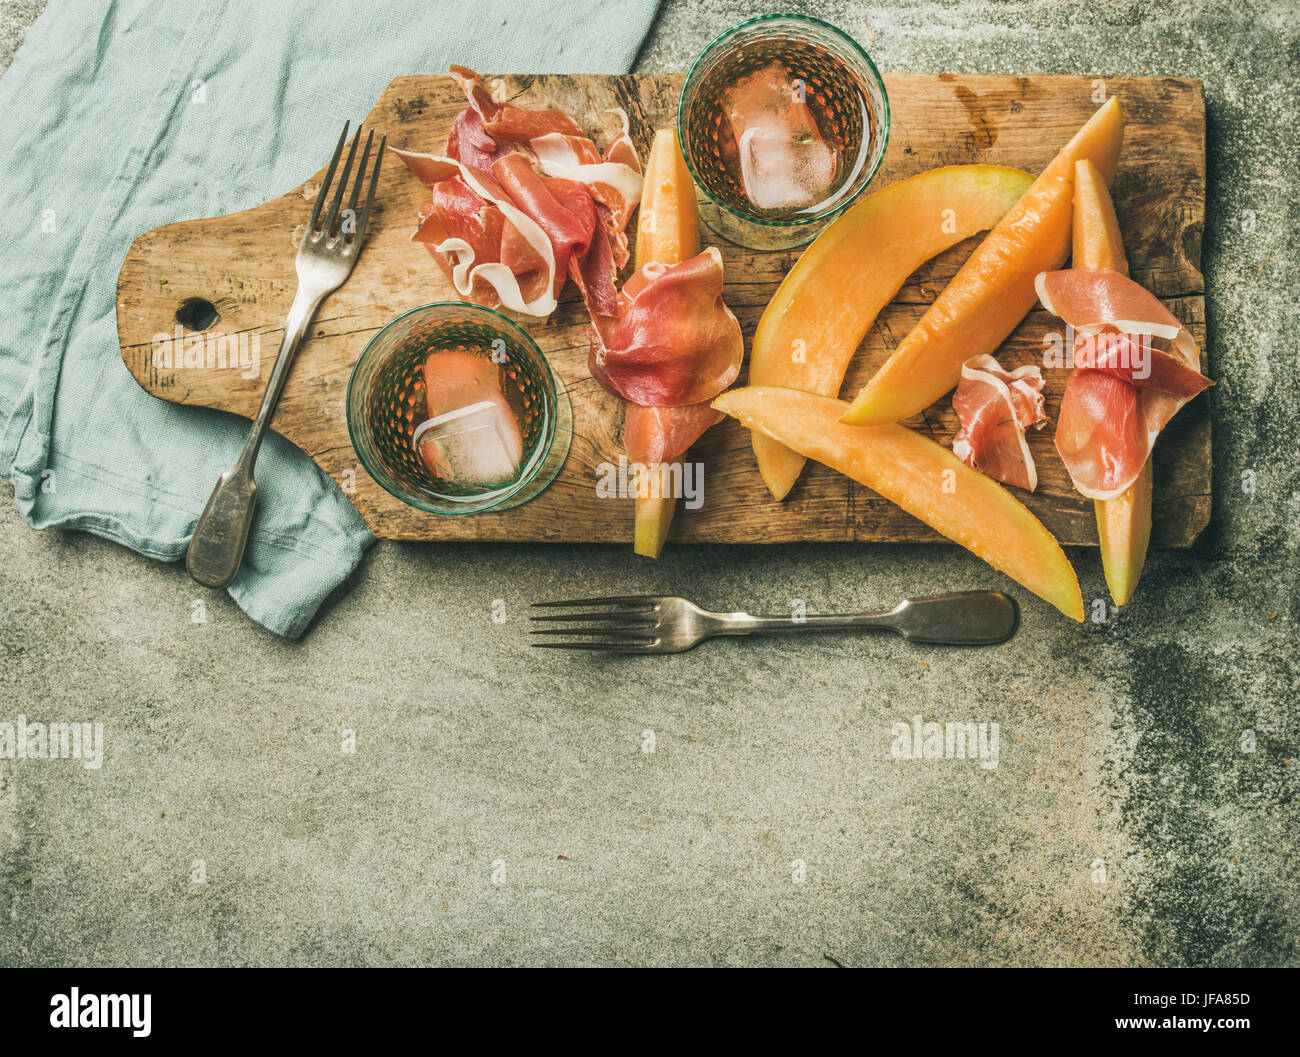 Flatlay of rose wine, prosciutto ham, melon, copy space - Stock Image